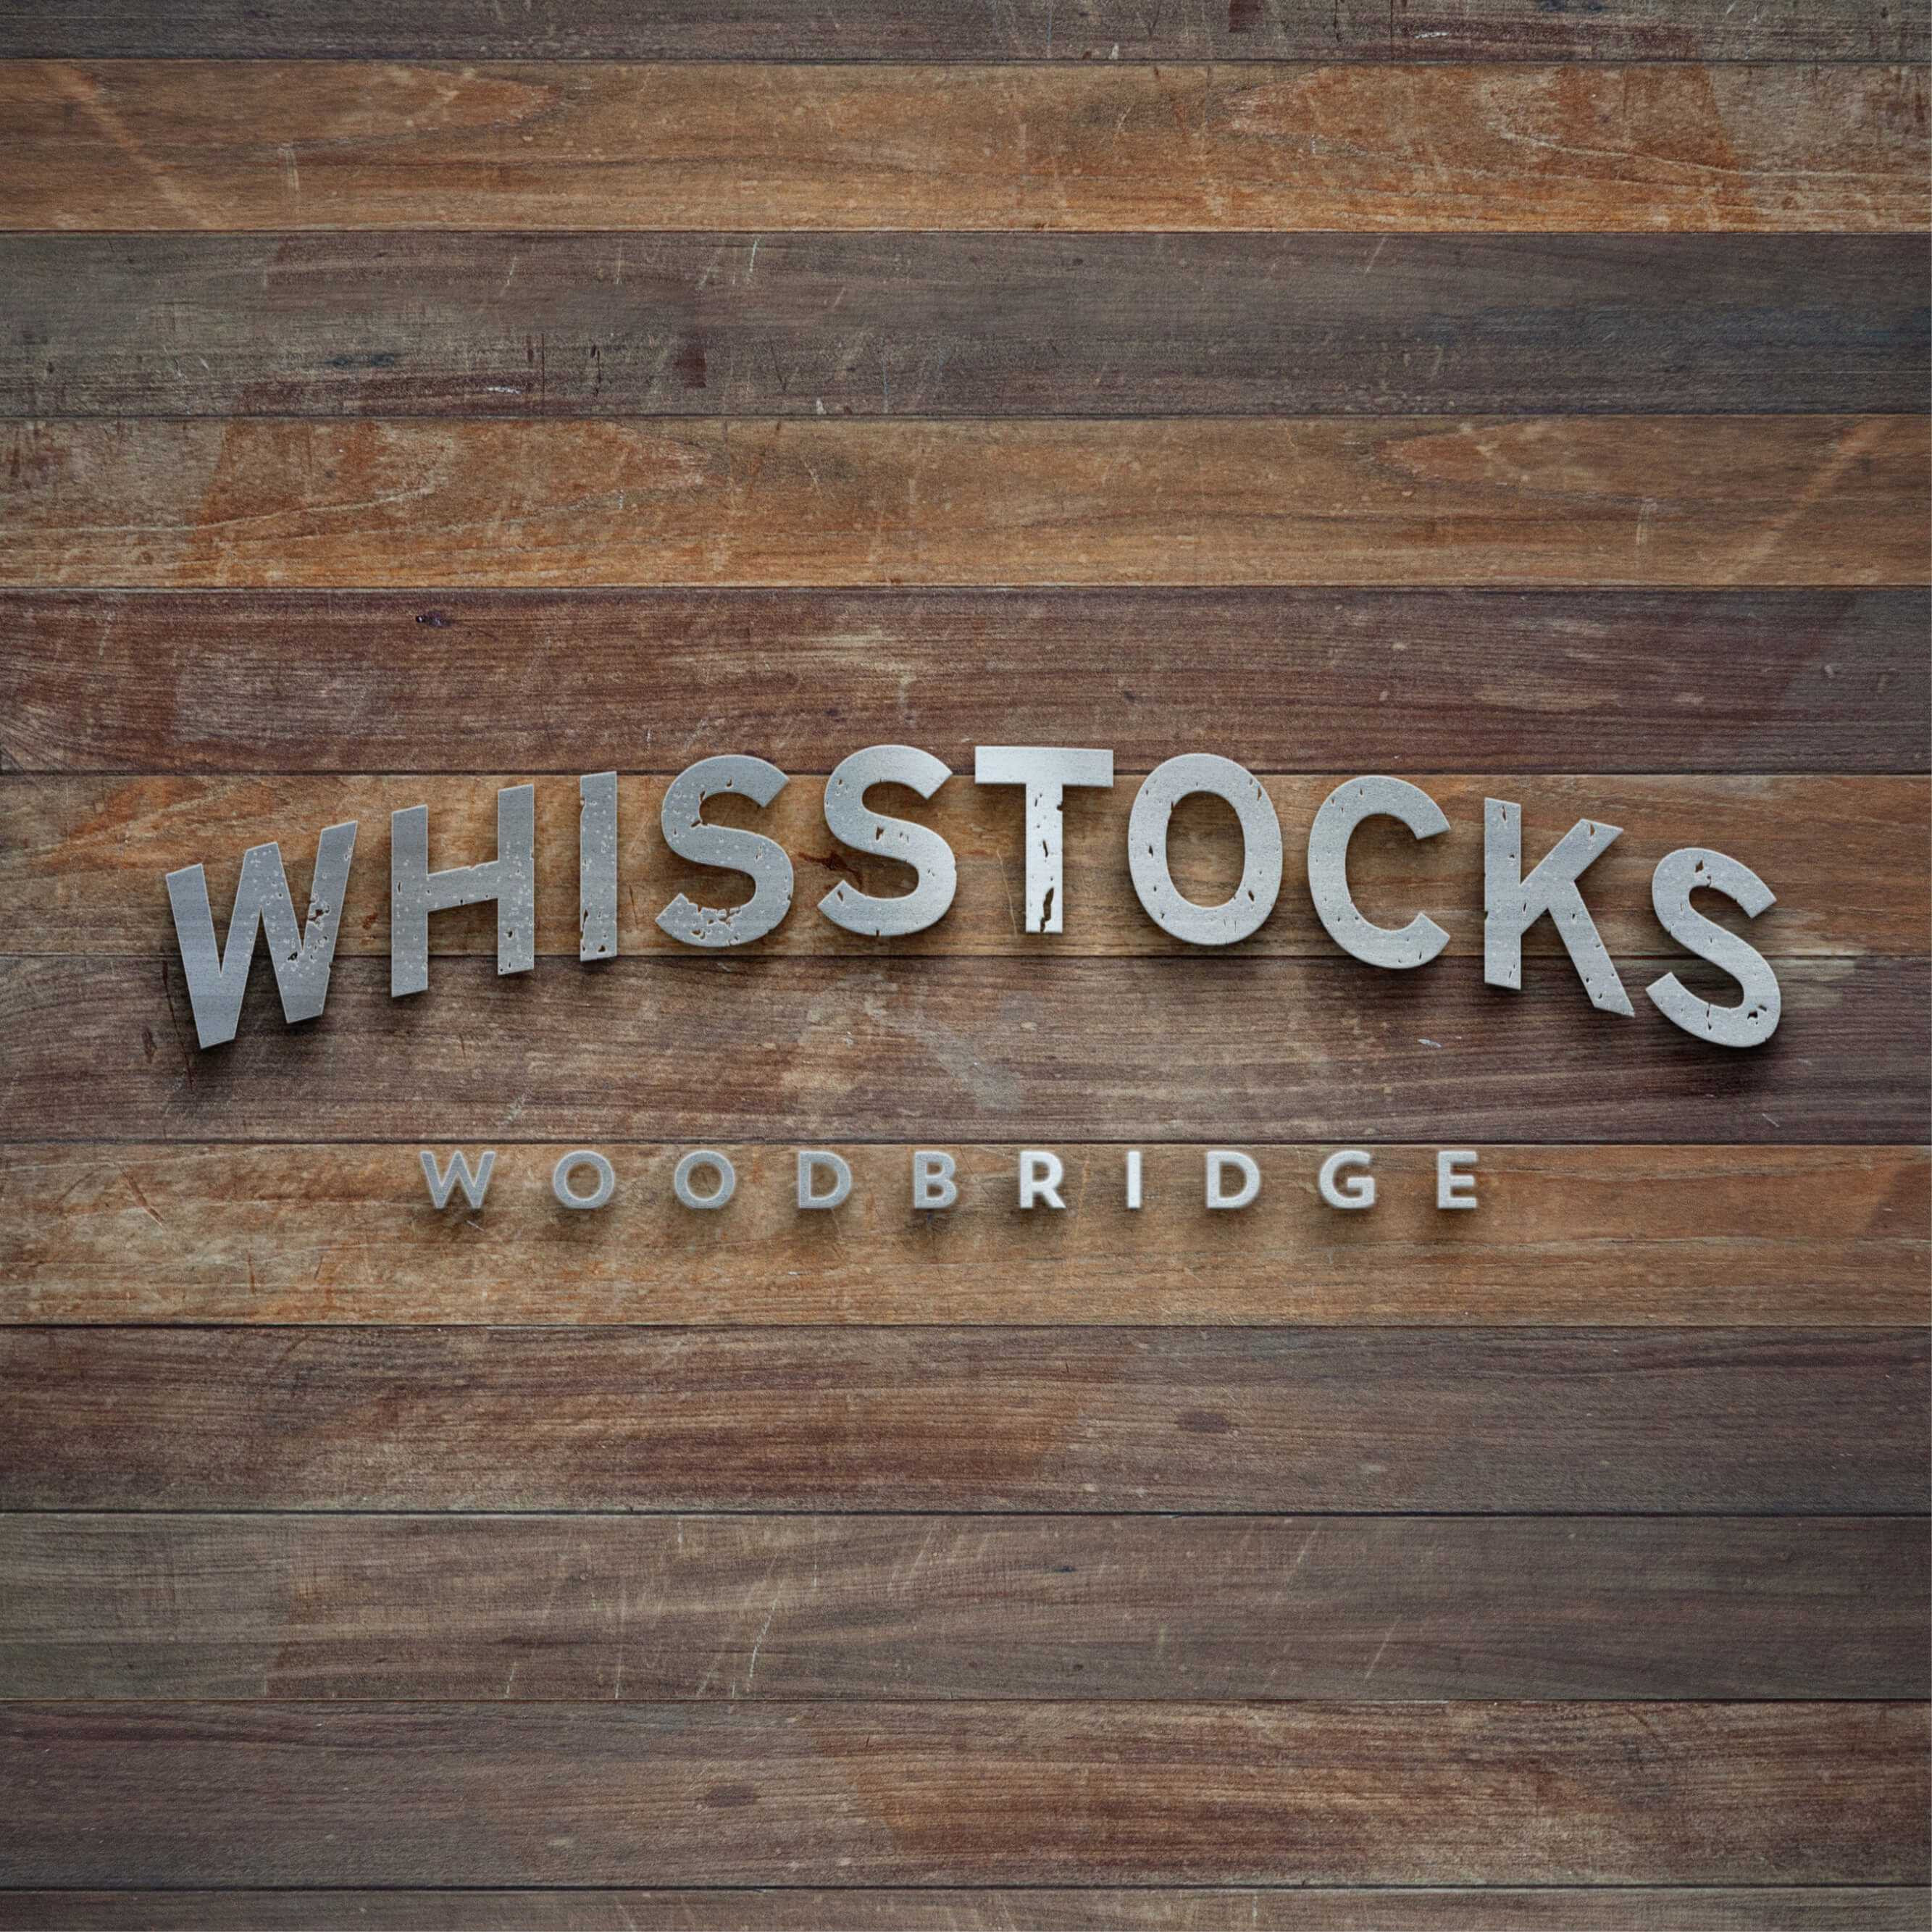 hardwood floor installation brooklyn of great work that brings great results our case studies for we helped fw properties to position whisstocks as a landmark mixed use destination